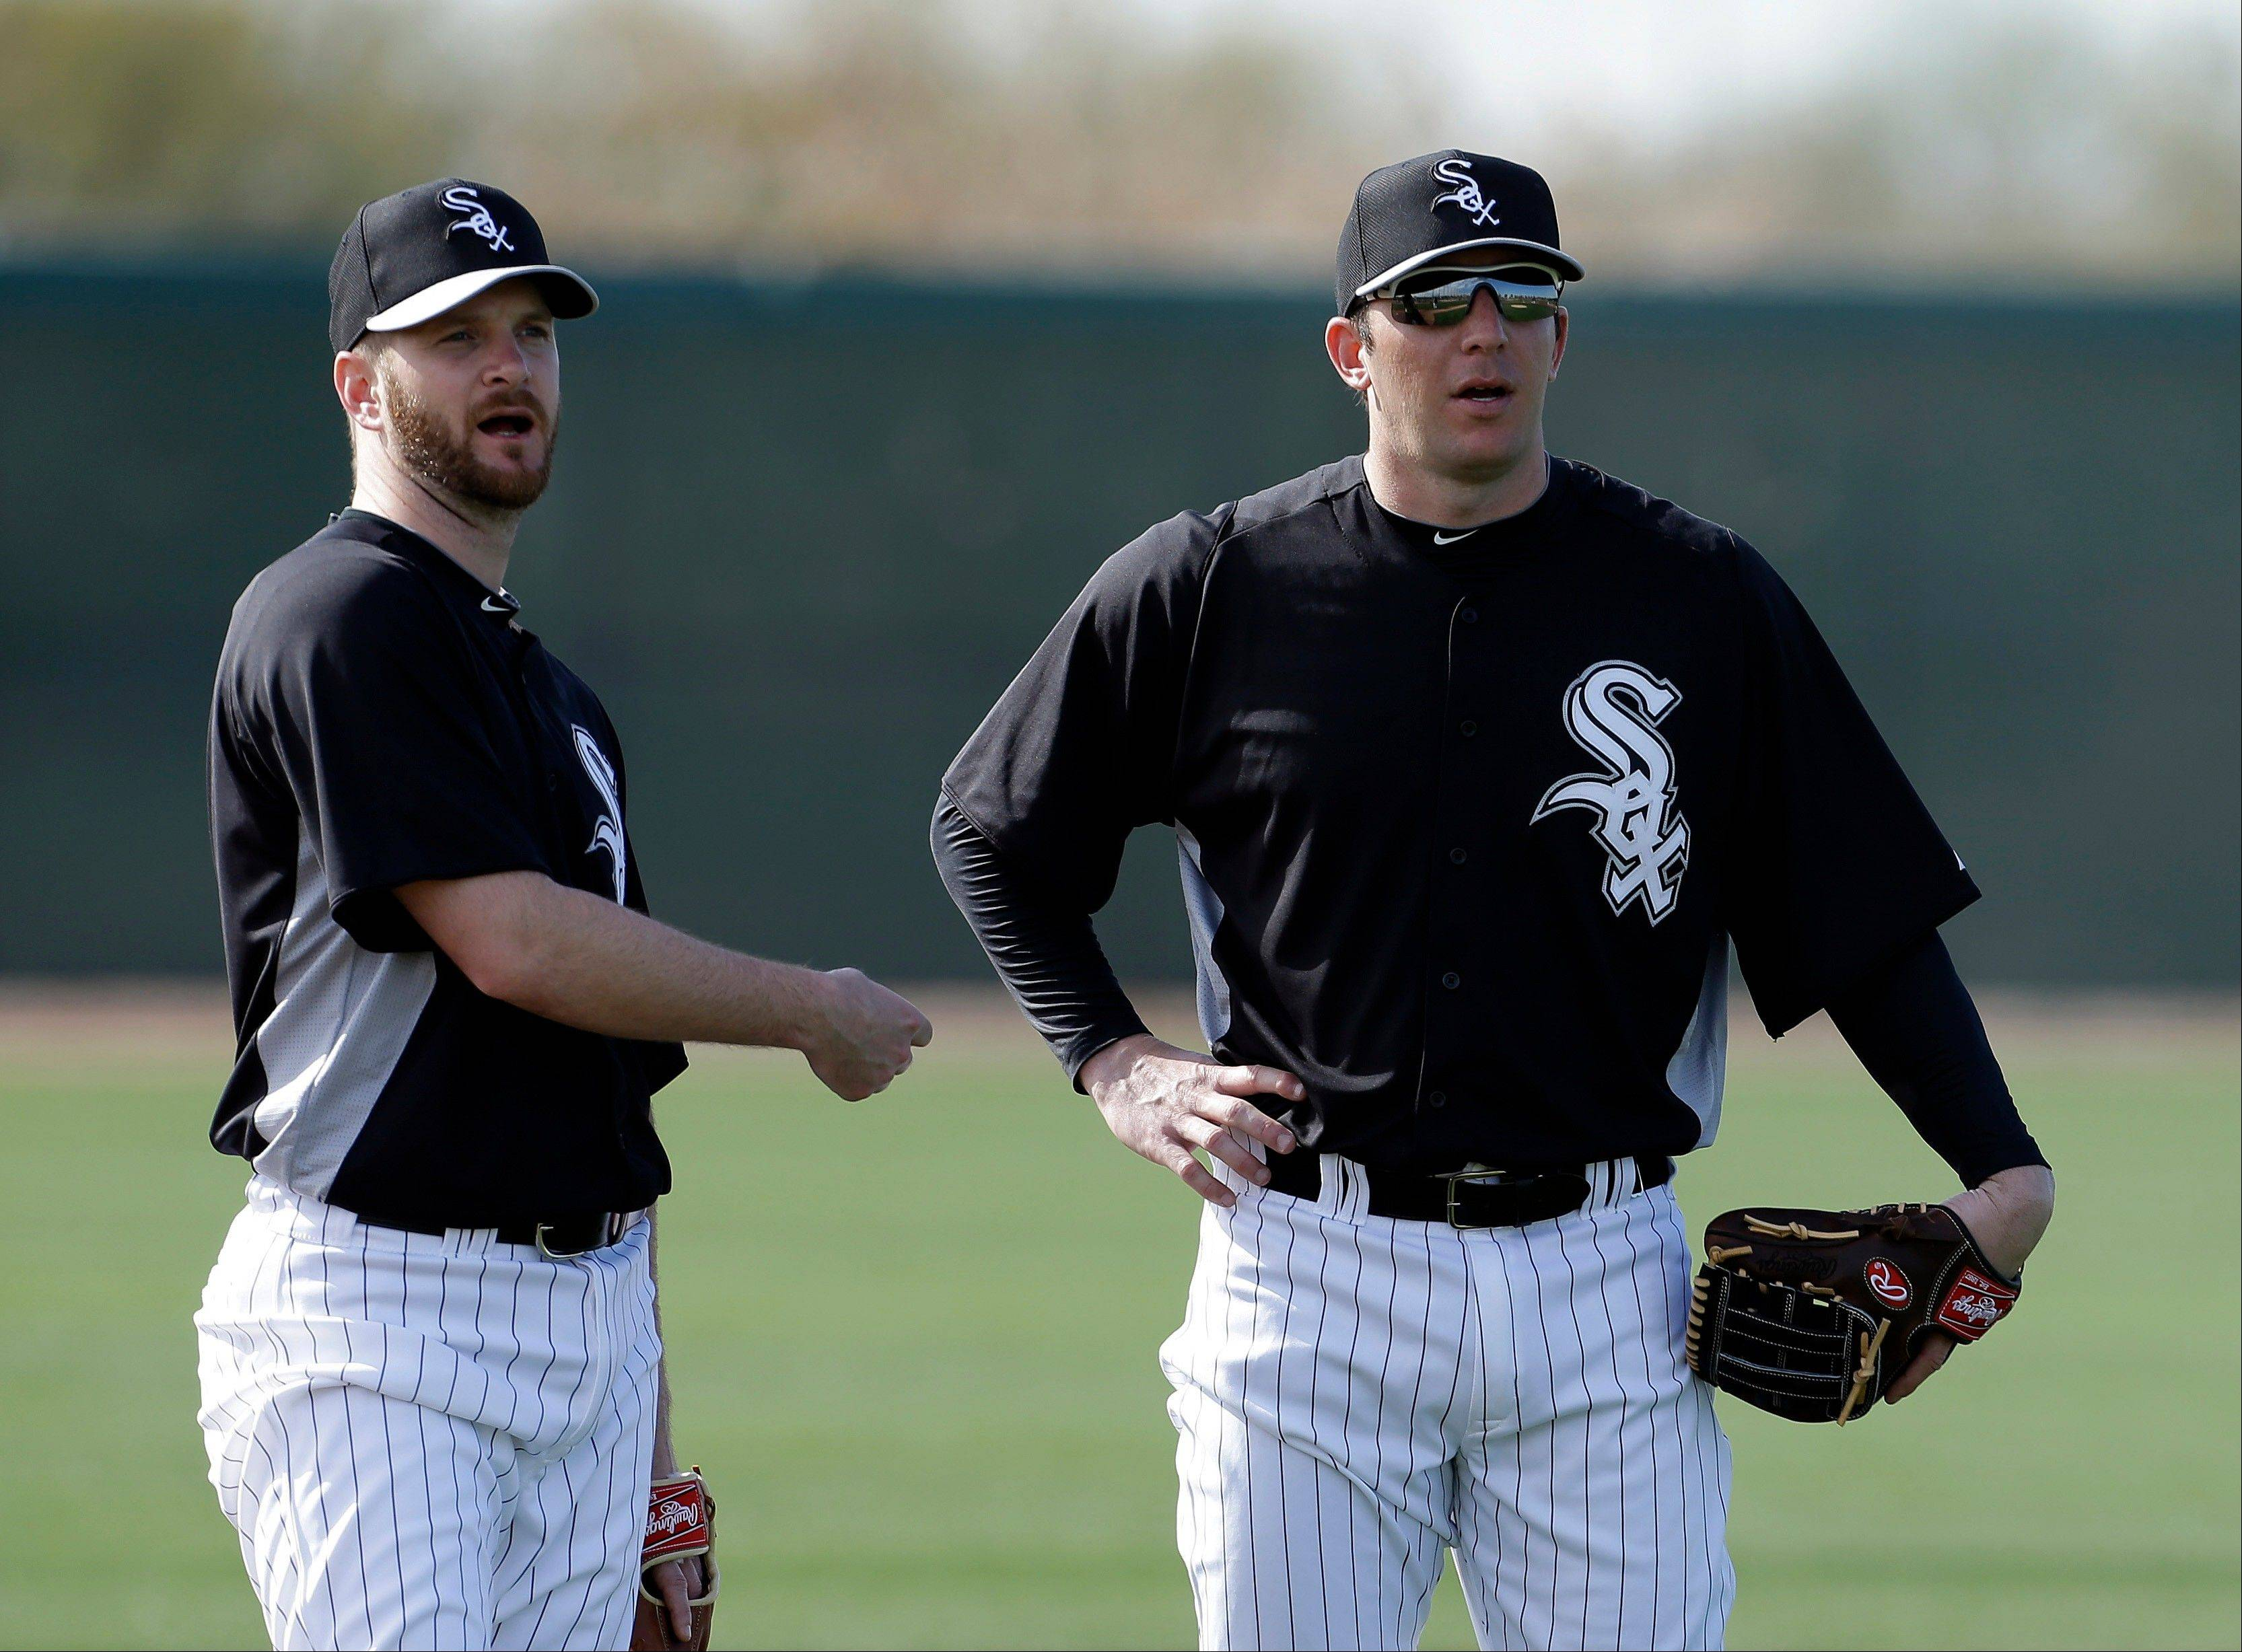 Chicago White Sox's Jeff Keppinger, left, talks with Brent Morel during a spring training baseball workout Tuesday, Feb. 19, 2013, in Phoenix. (AP Photo/Darron Cummings)